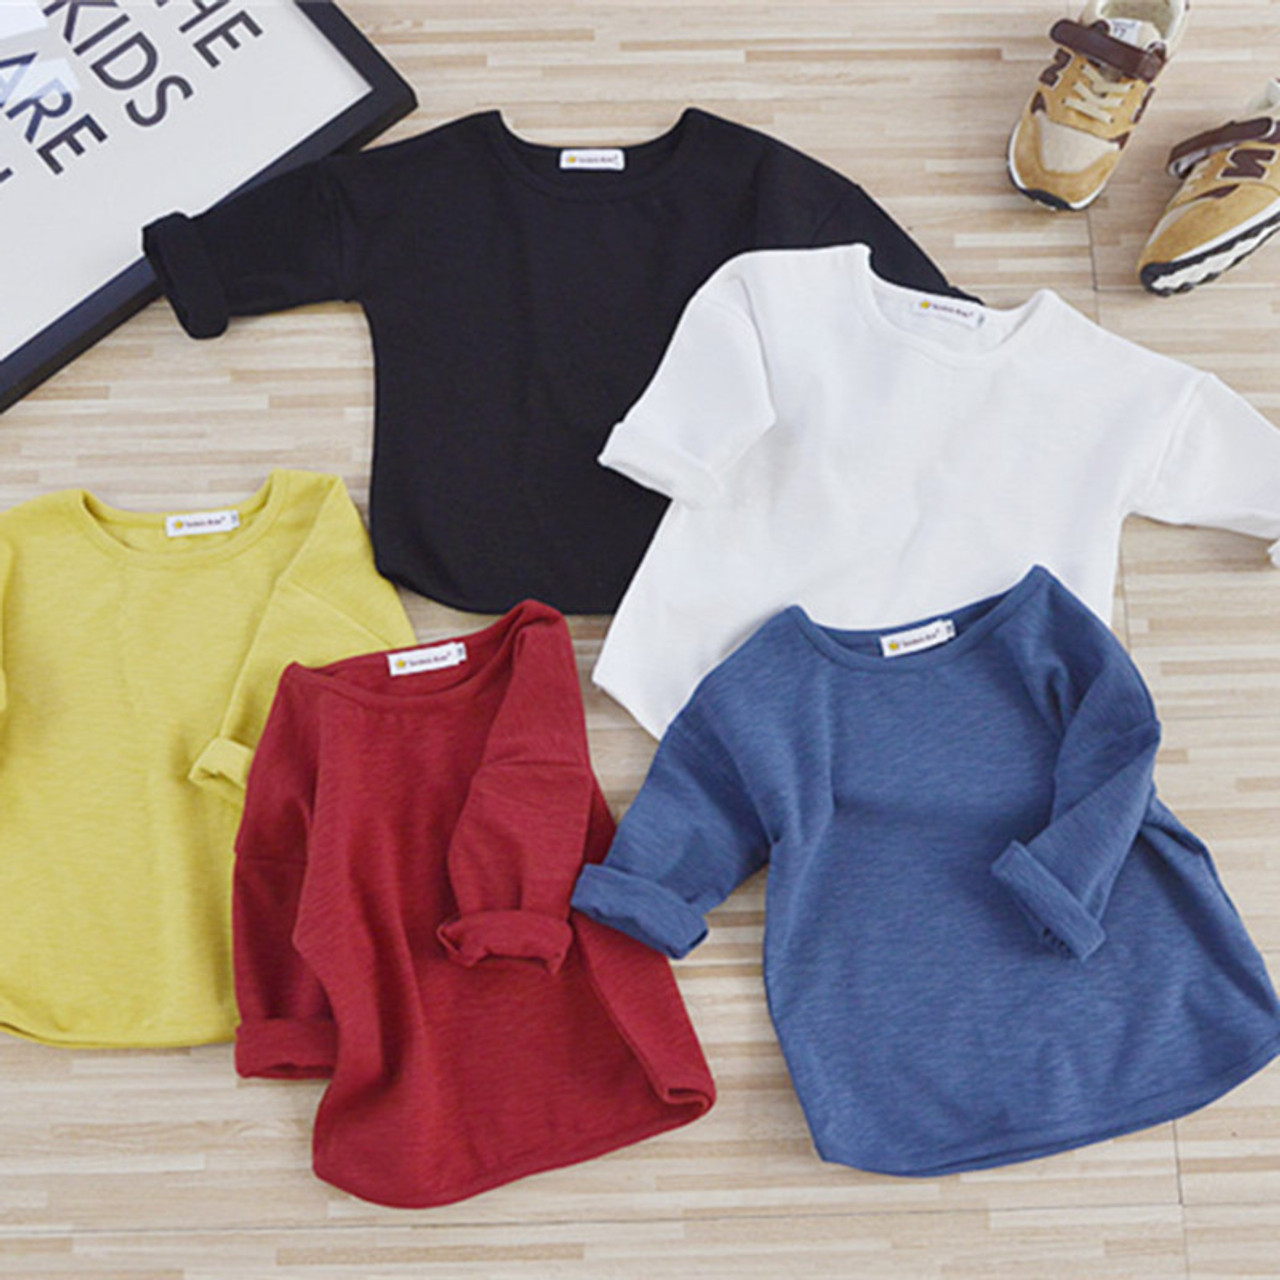 Baby T-Shirt,for 1-7 Years Old Summer Children Infant Kid Girls Boys Car Star Print T-Shirt Tops Shirts Tee Summer Clothes